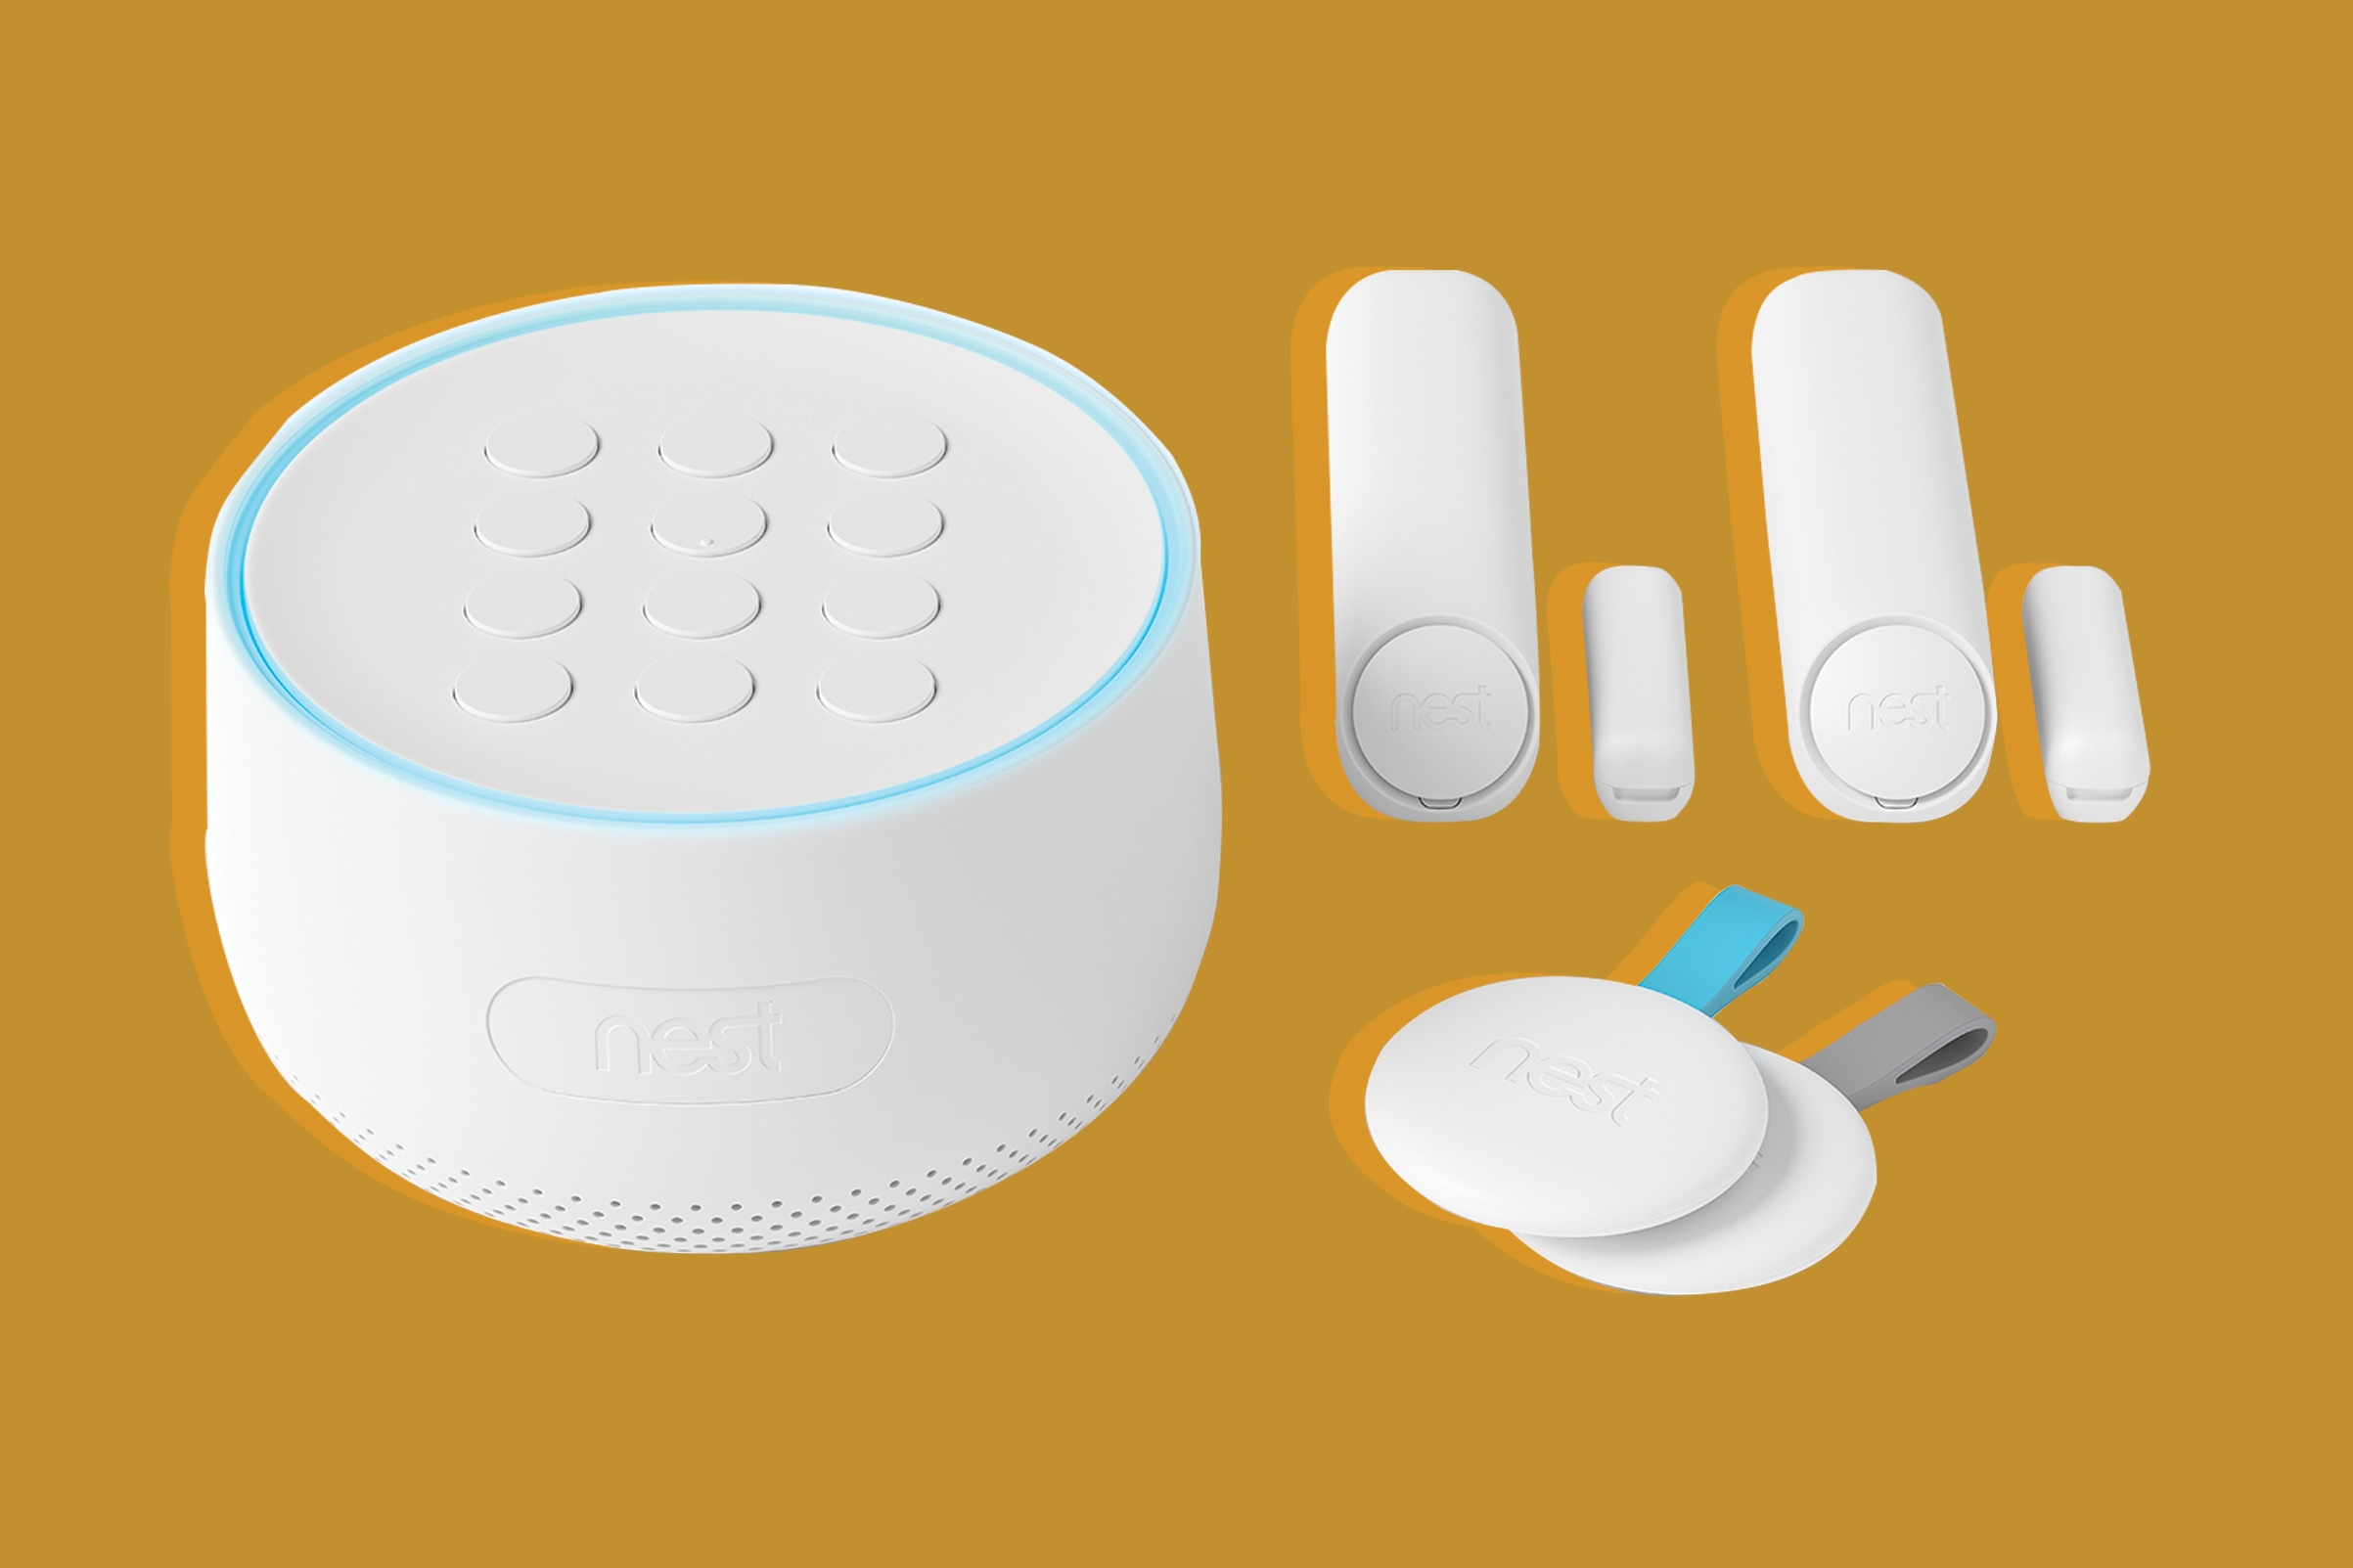 Nest Secure is one of the best inventions of 2017